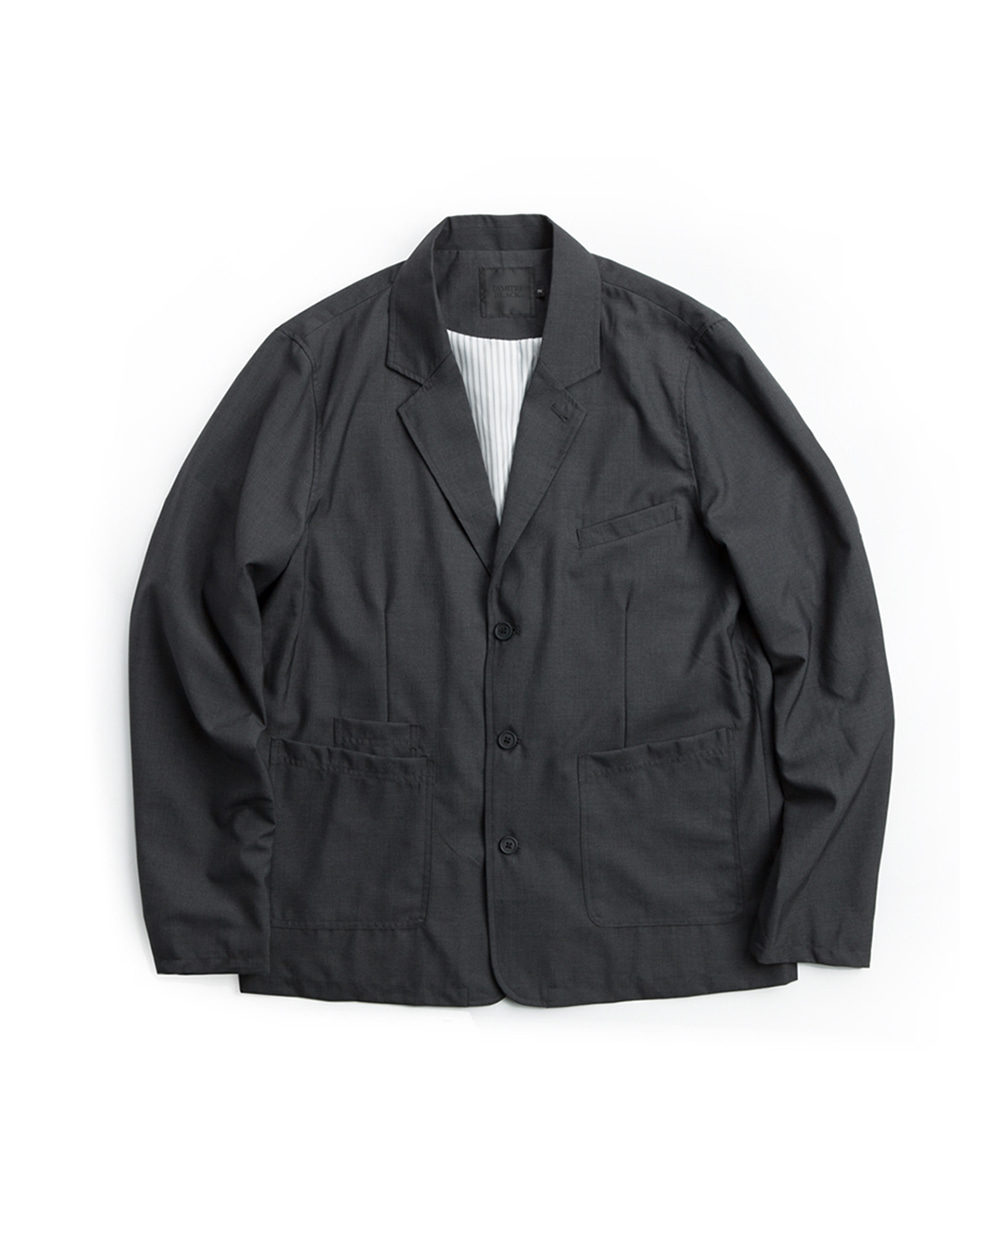 REGULAR FORMAL JACKET DARK GRAY